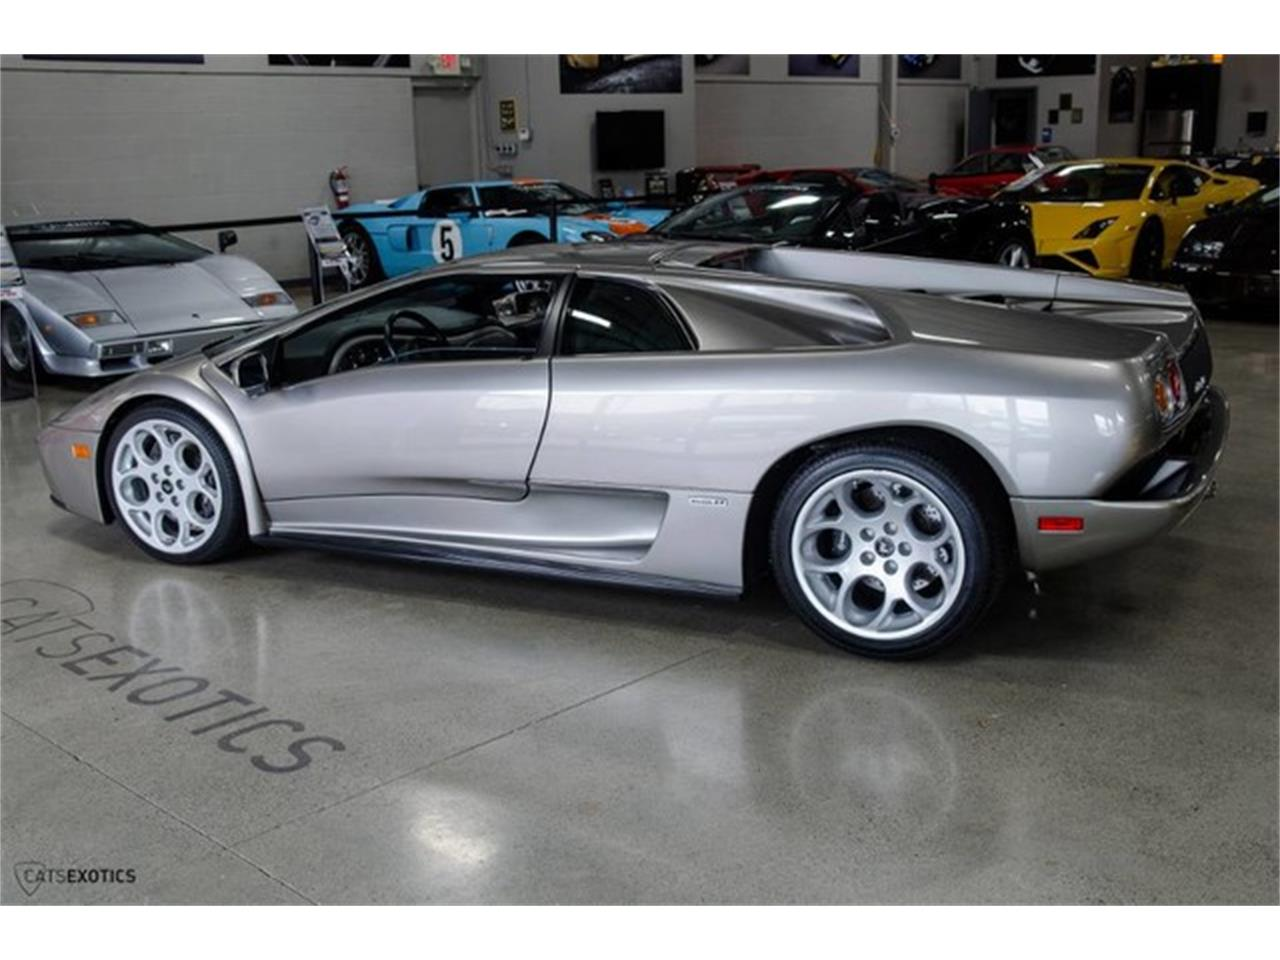 Large Picture of '01 Lamborghini Diablo Auction Vehicle Offered by Cats Exotics - MZI1